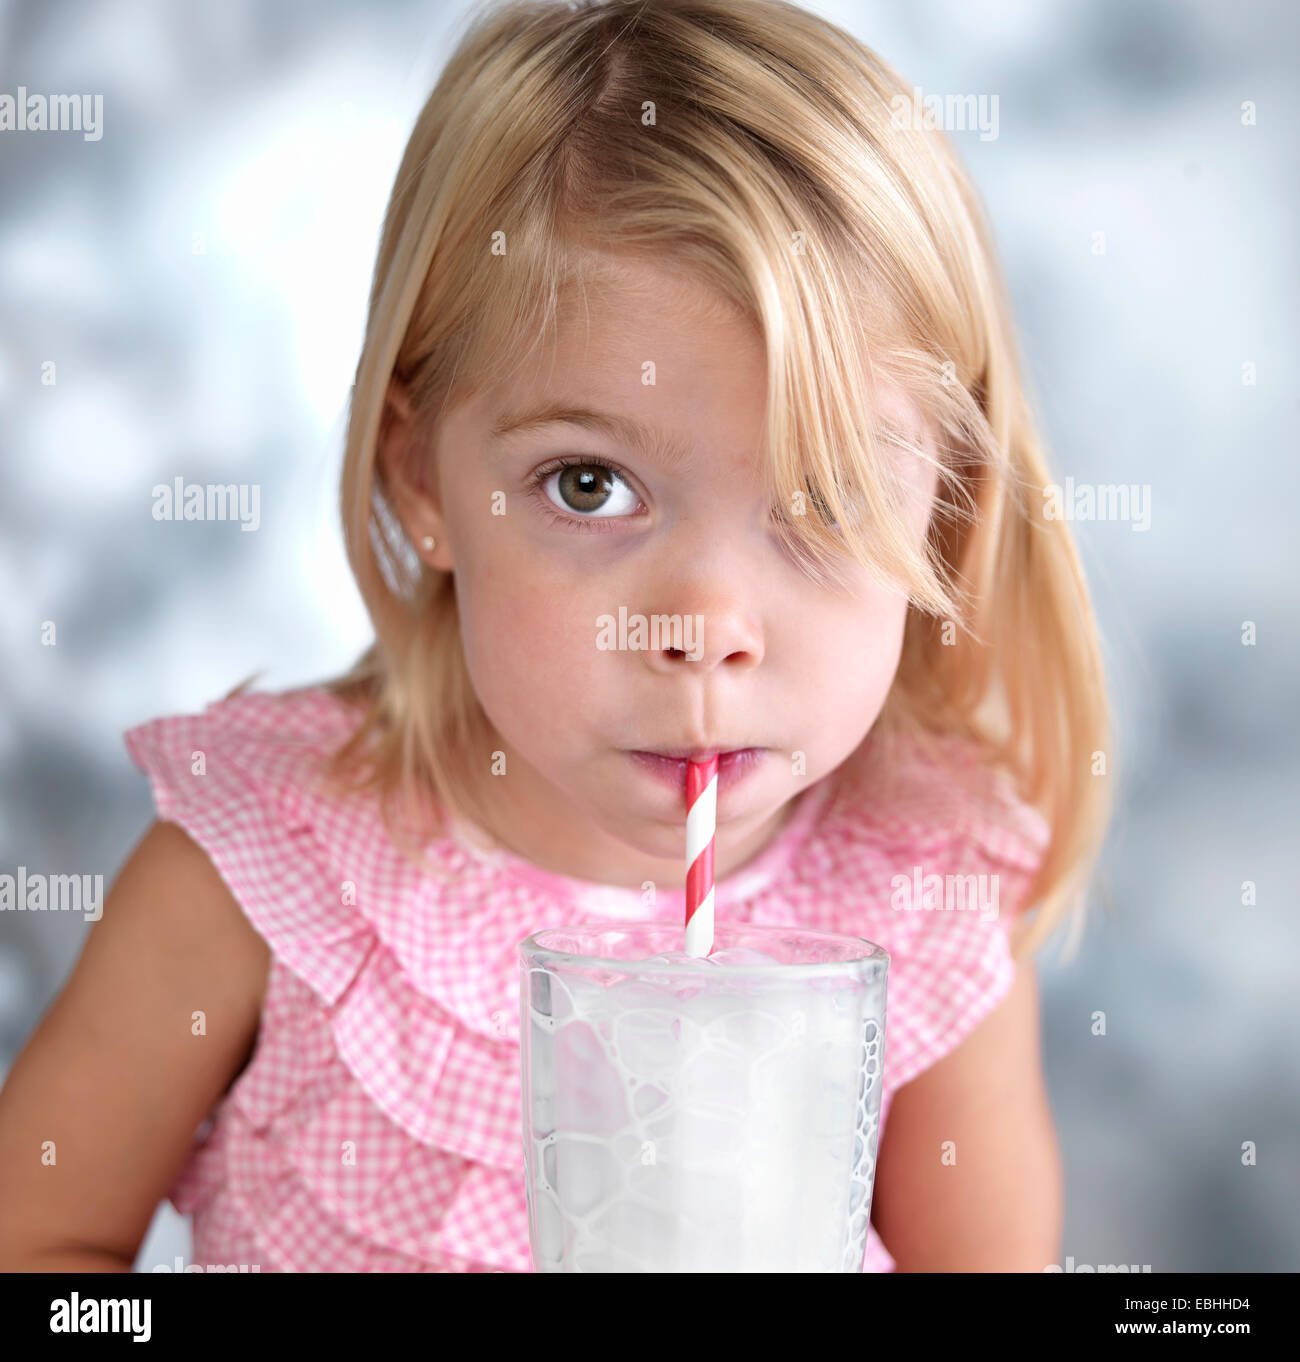 Portrait of female toddler blowing bubbles in milk through drinking straw - Stock Image